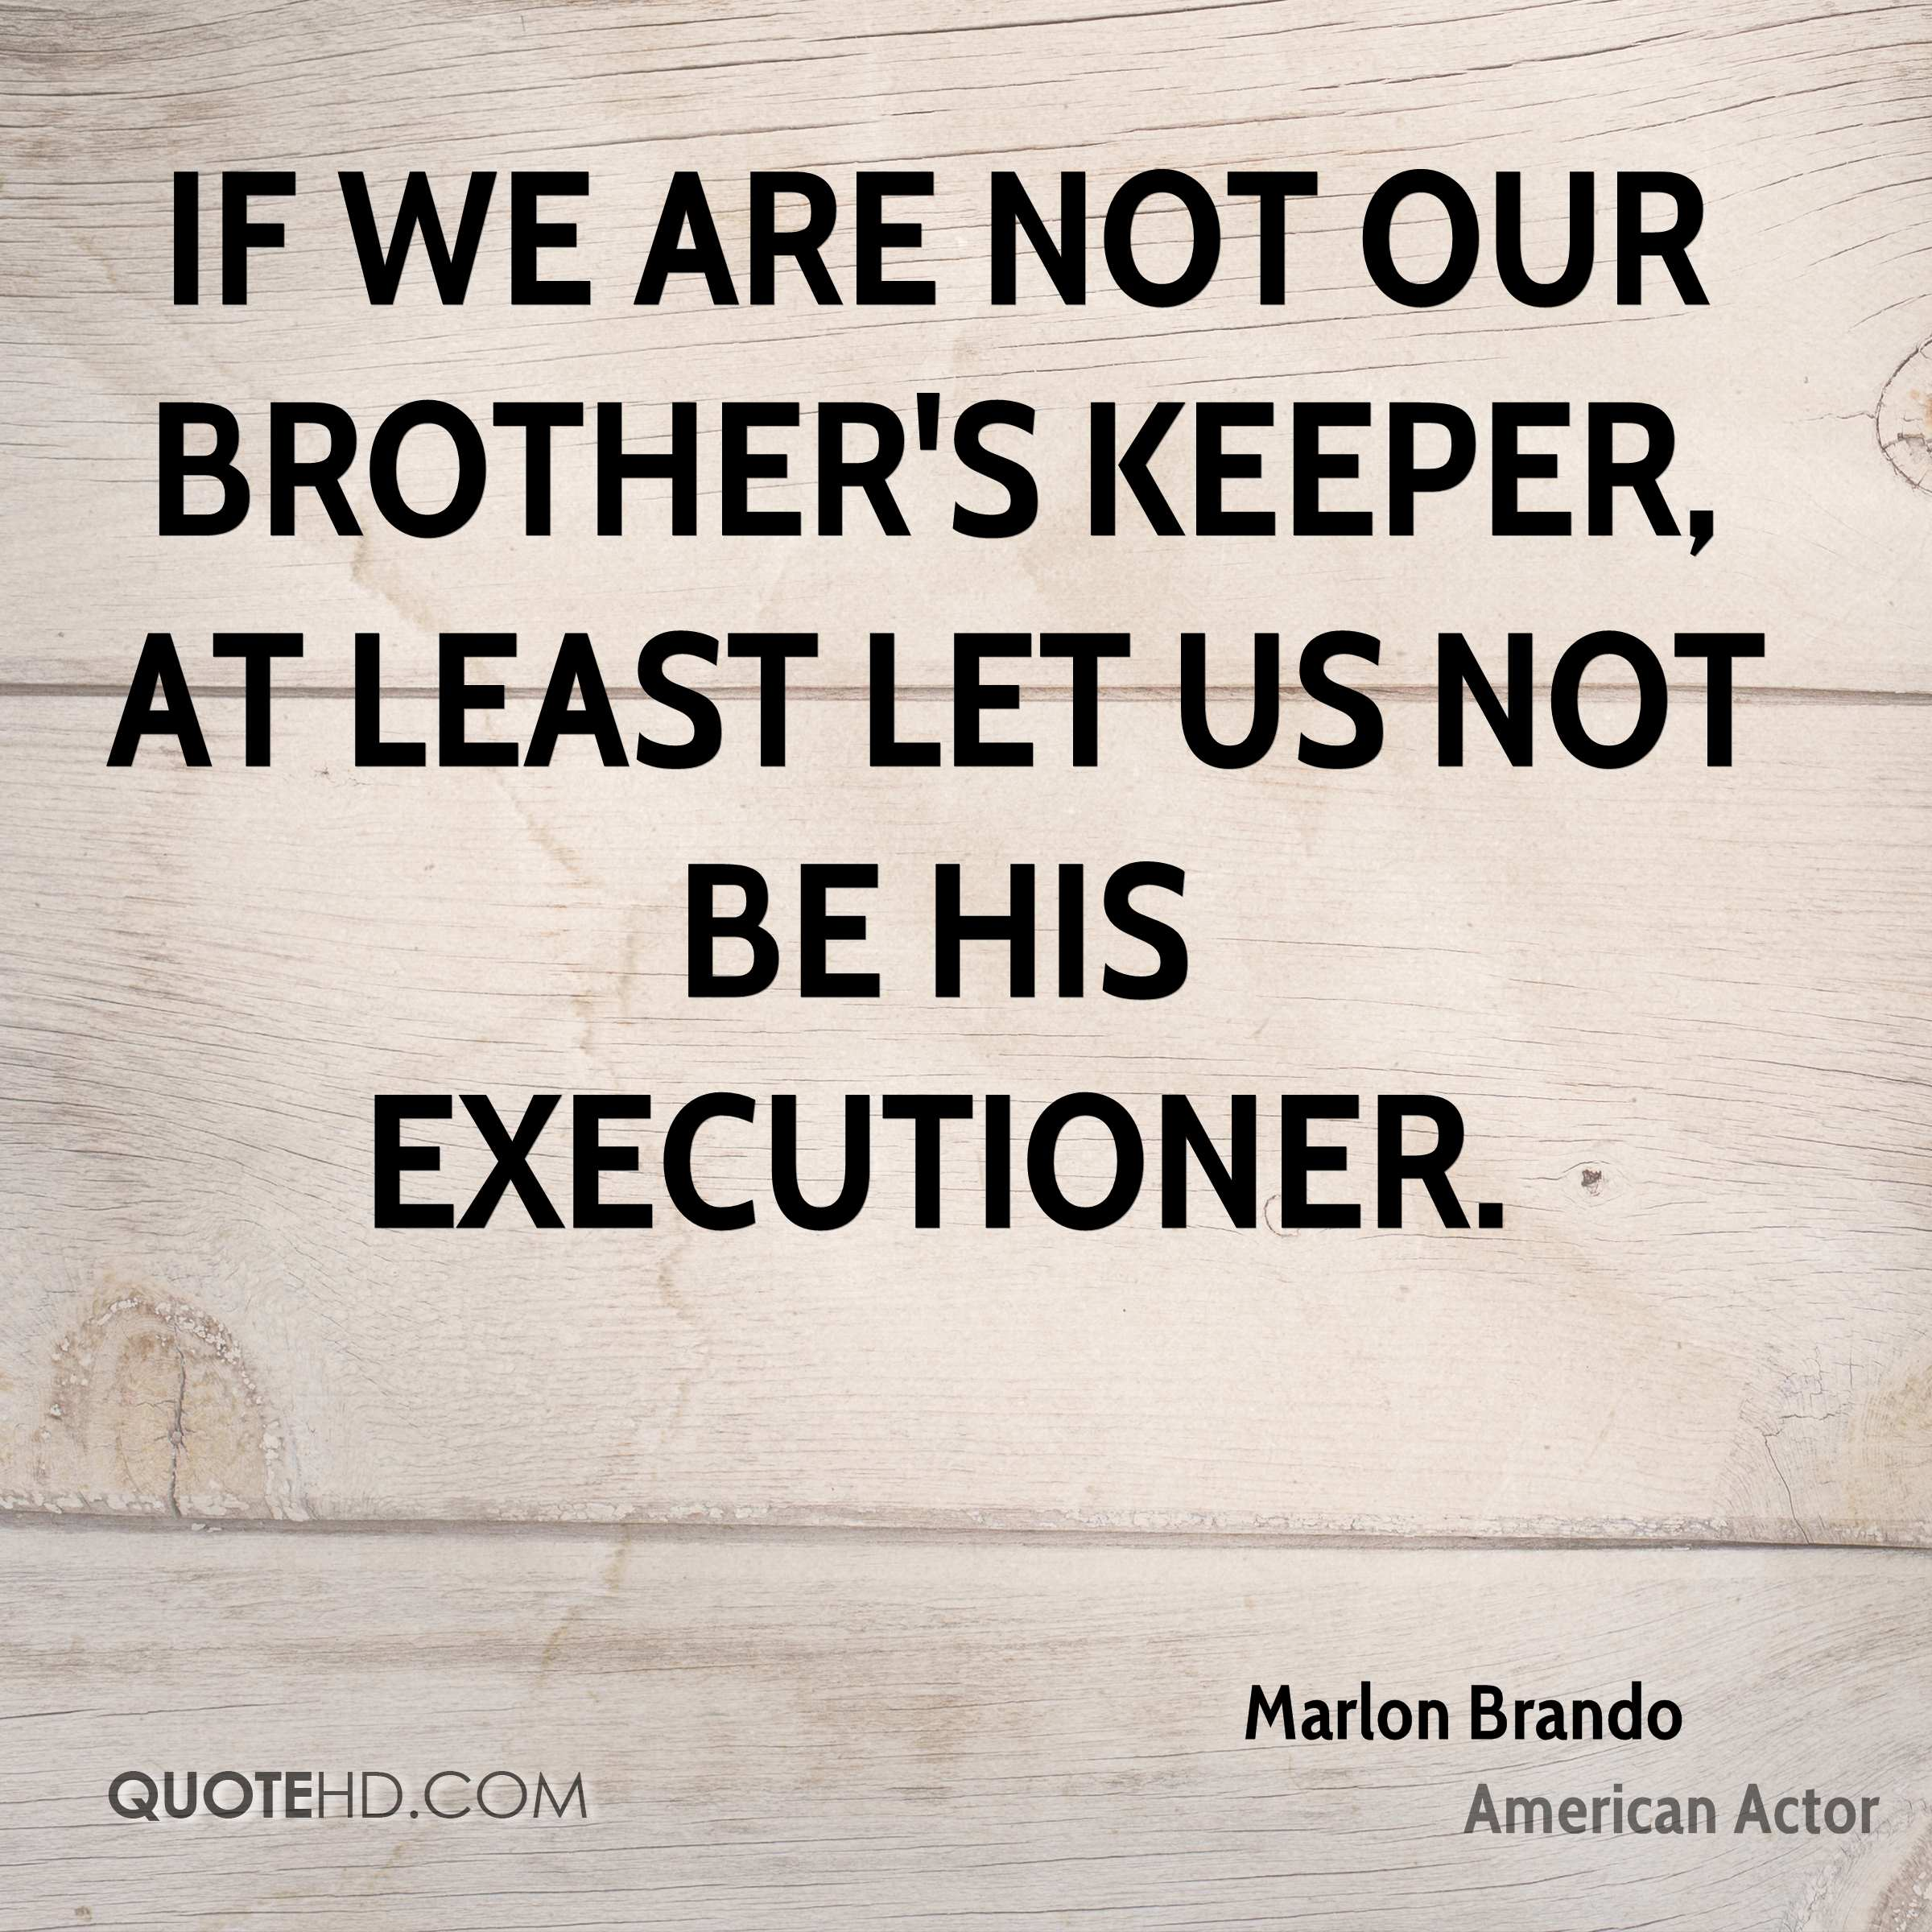 If we are not our brother's keeper, at least let us not be his executioner.